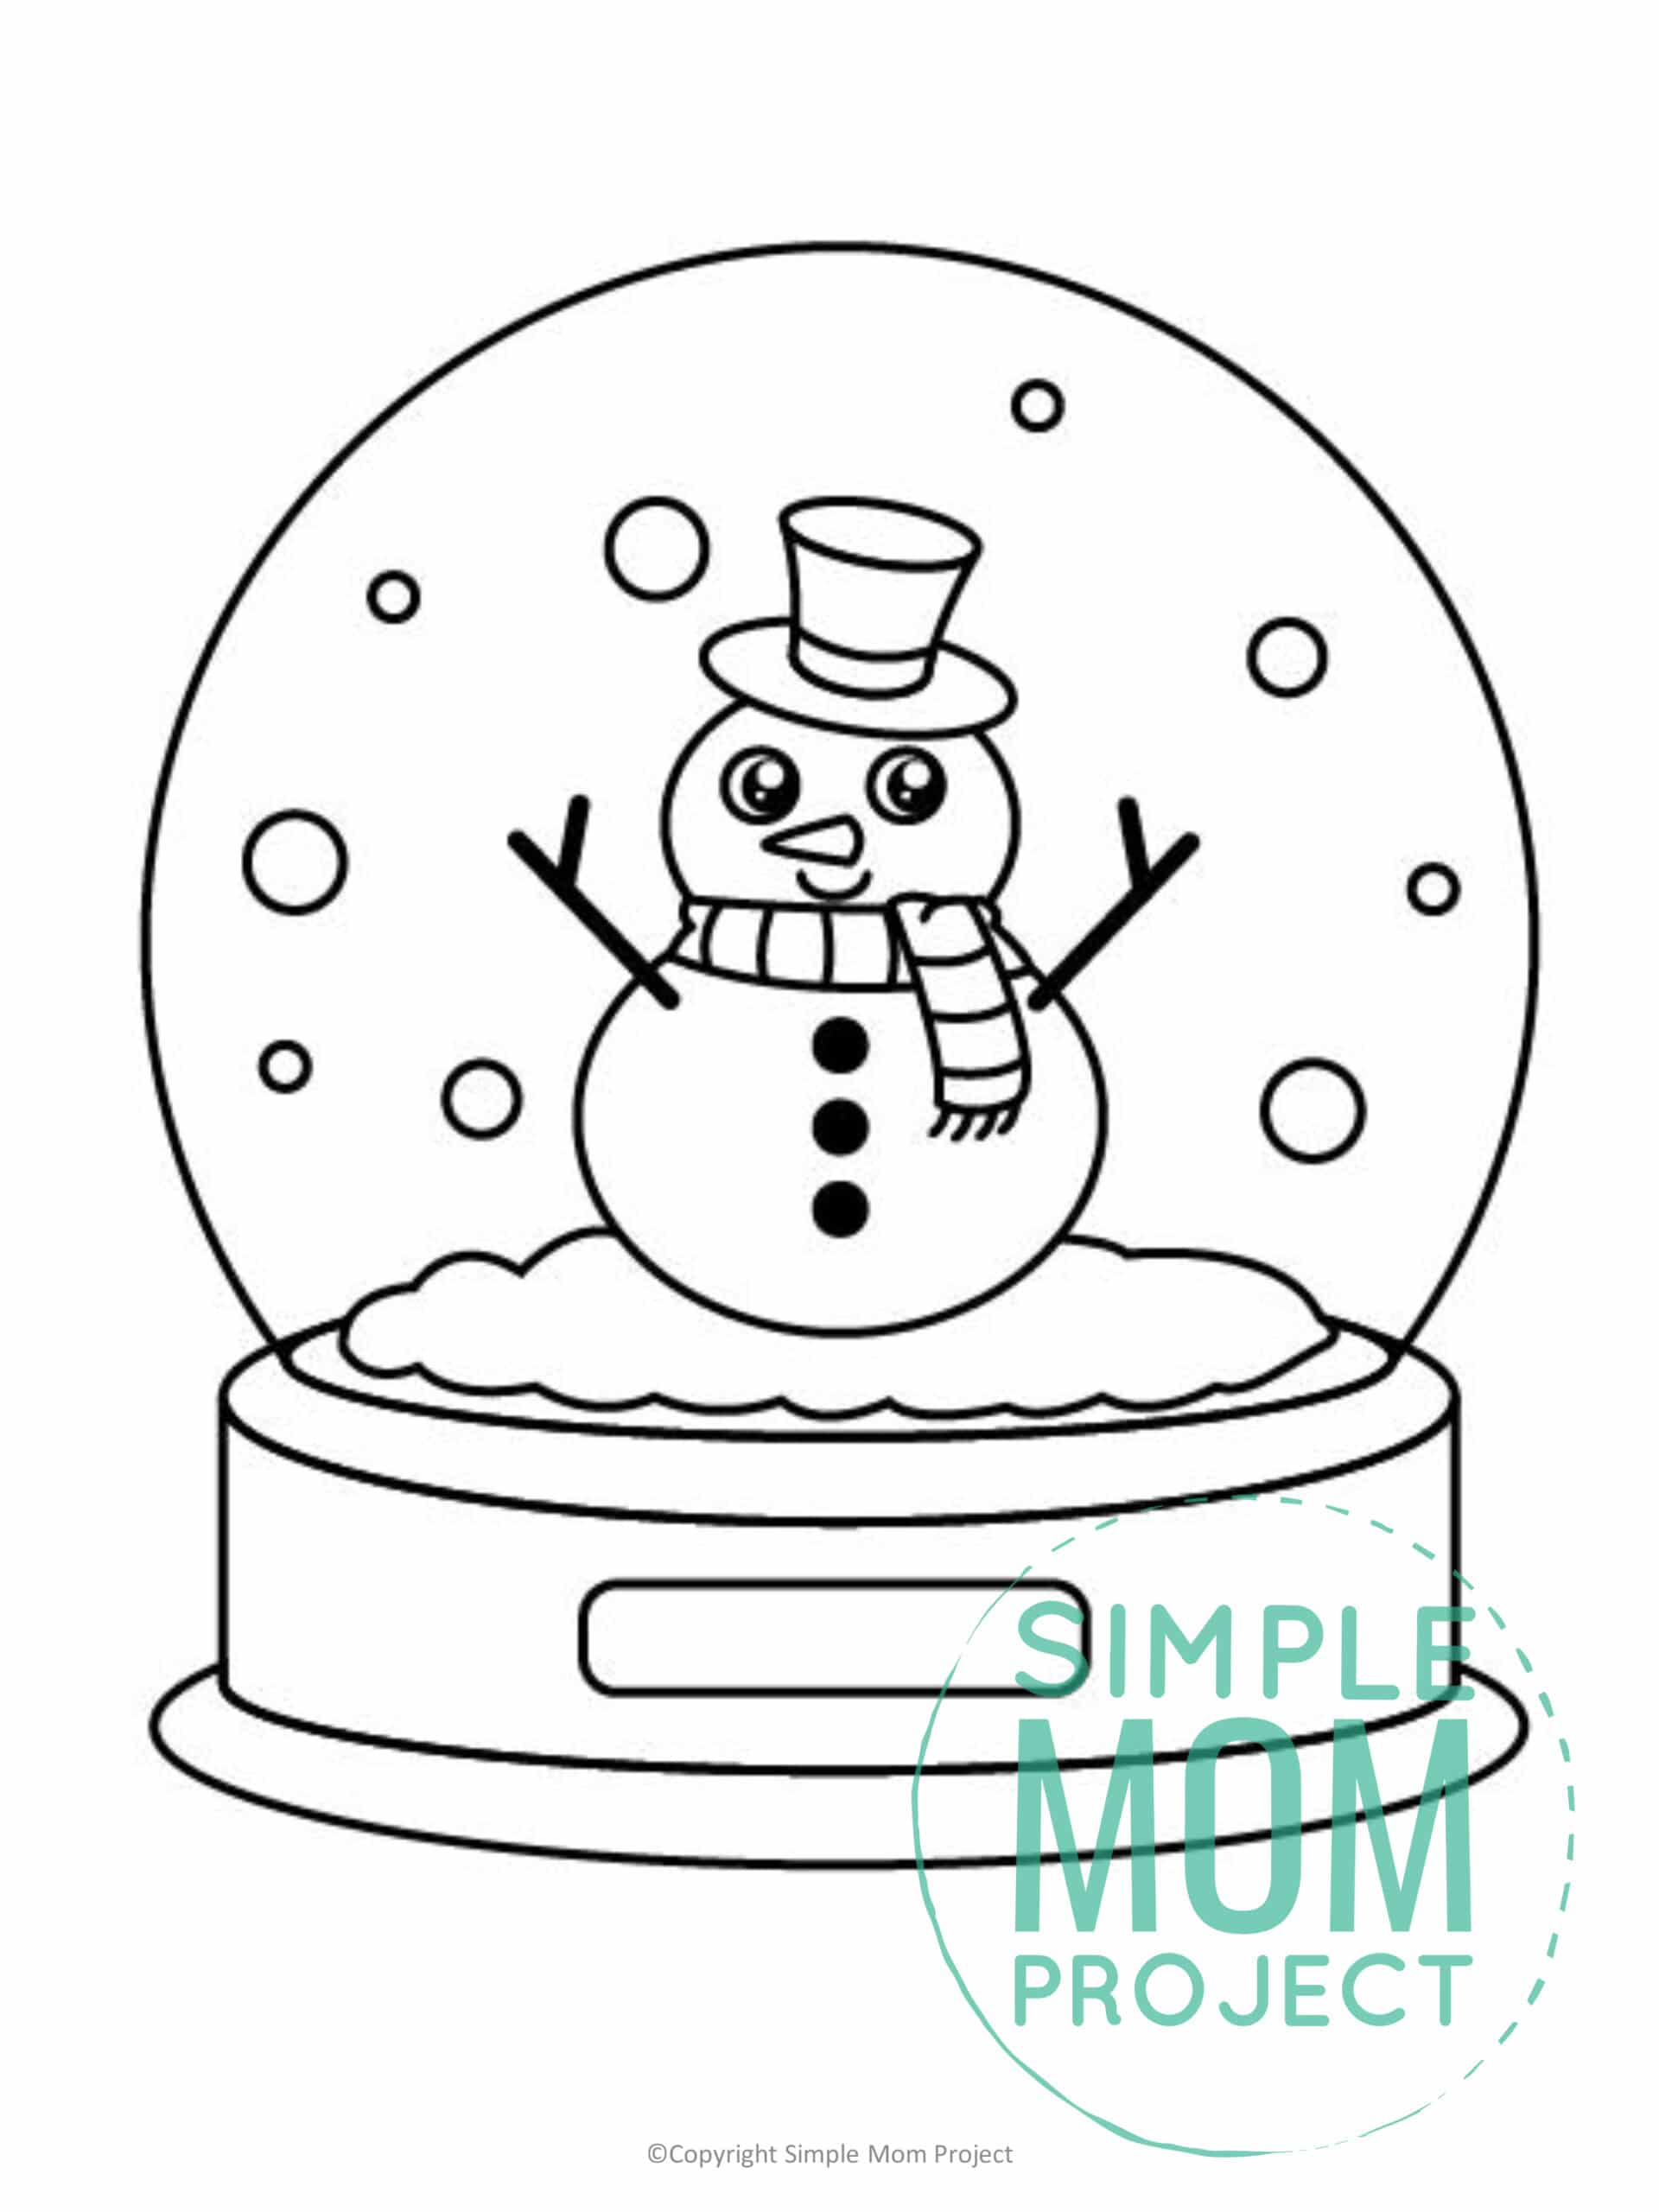 Printable Snow globe Template coloring page for preschoolers, toddlers and kindergartners 1